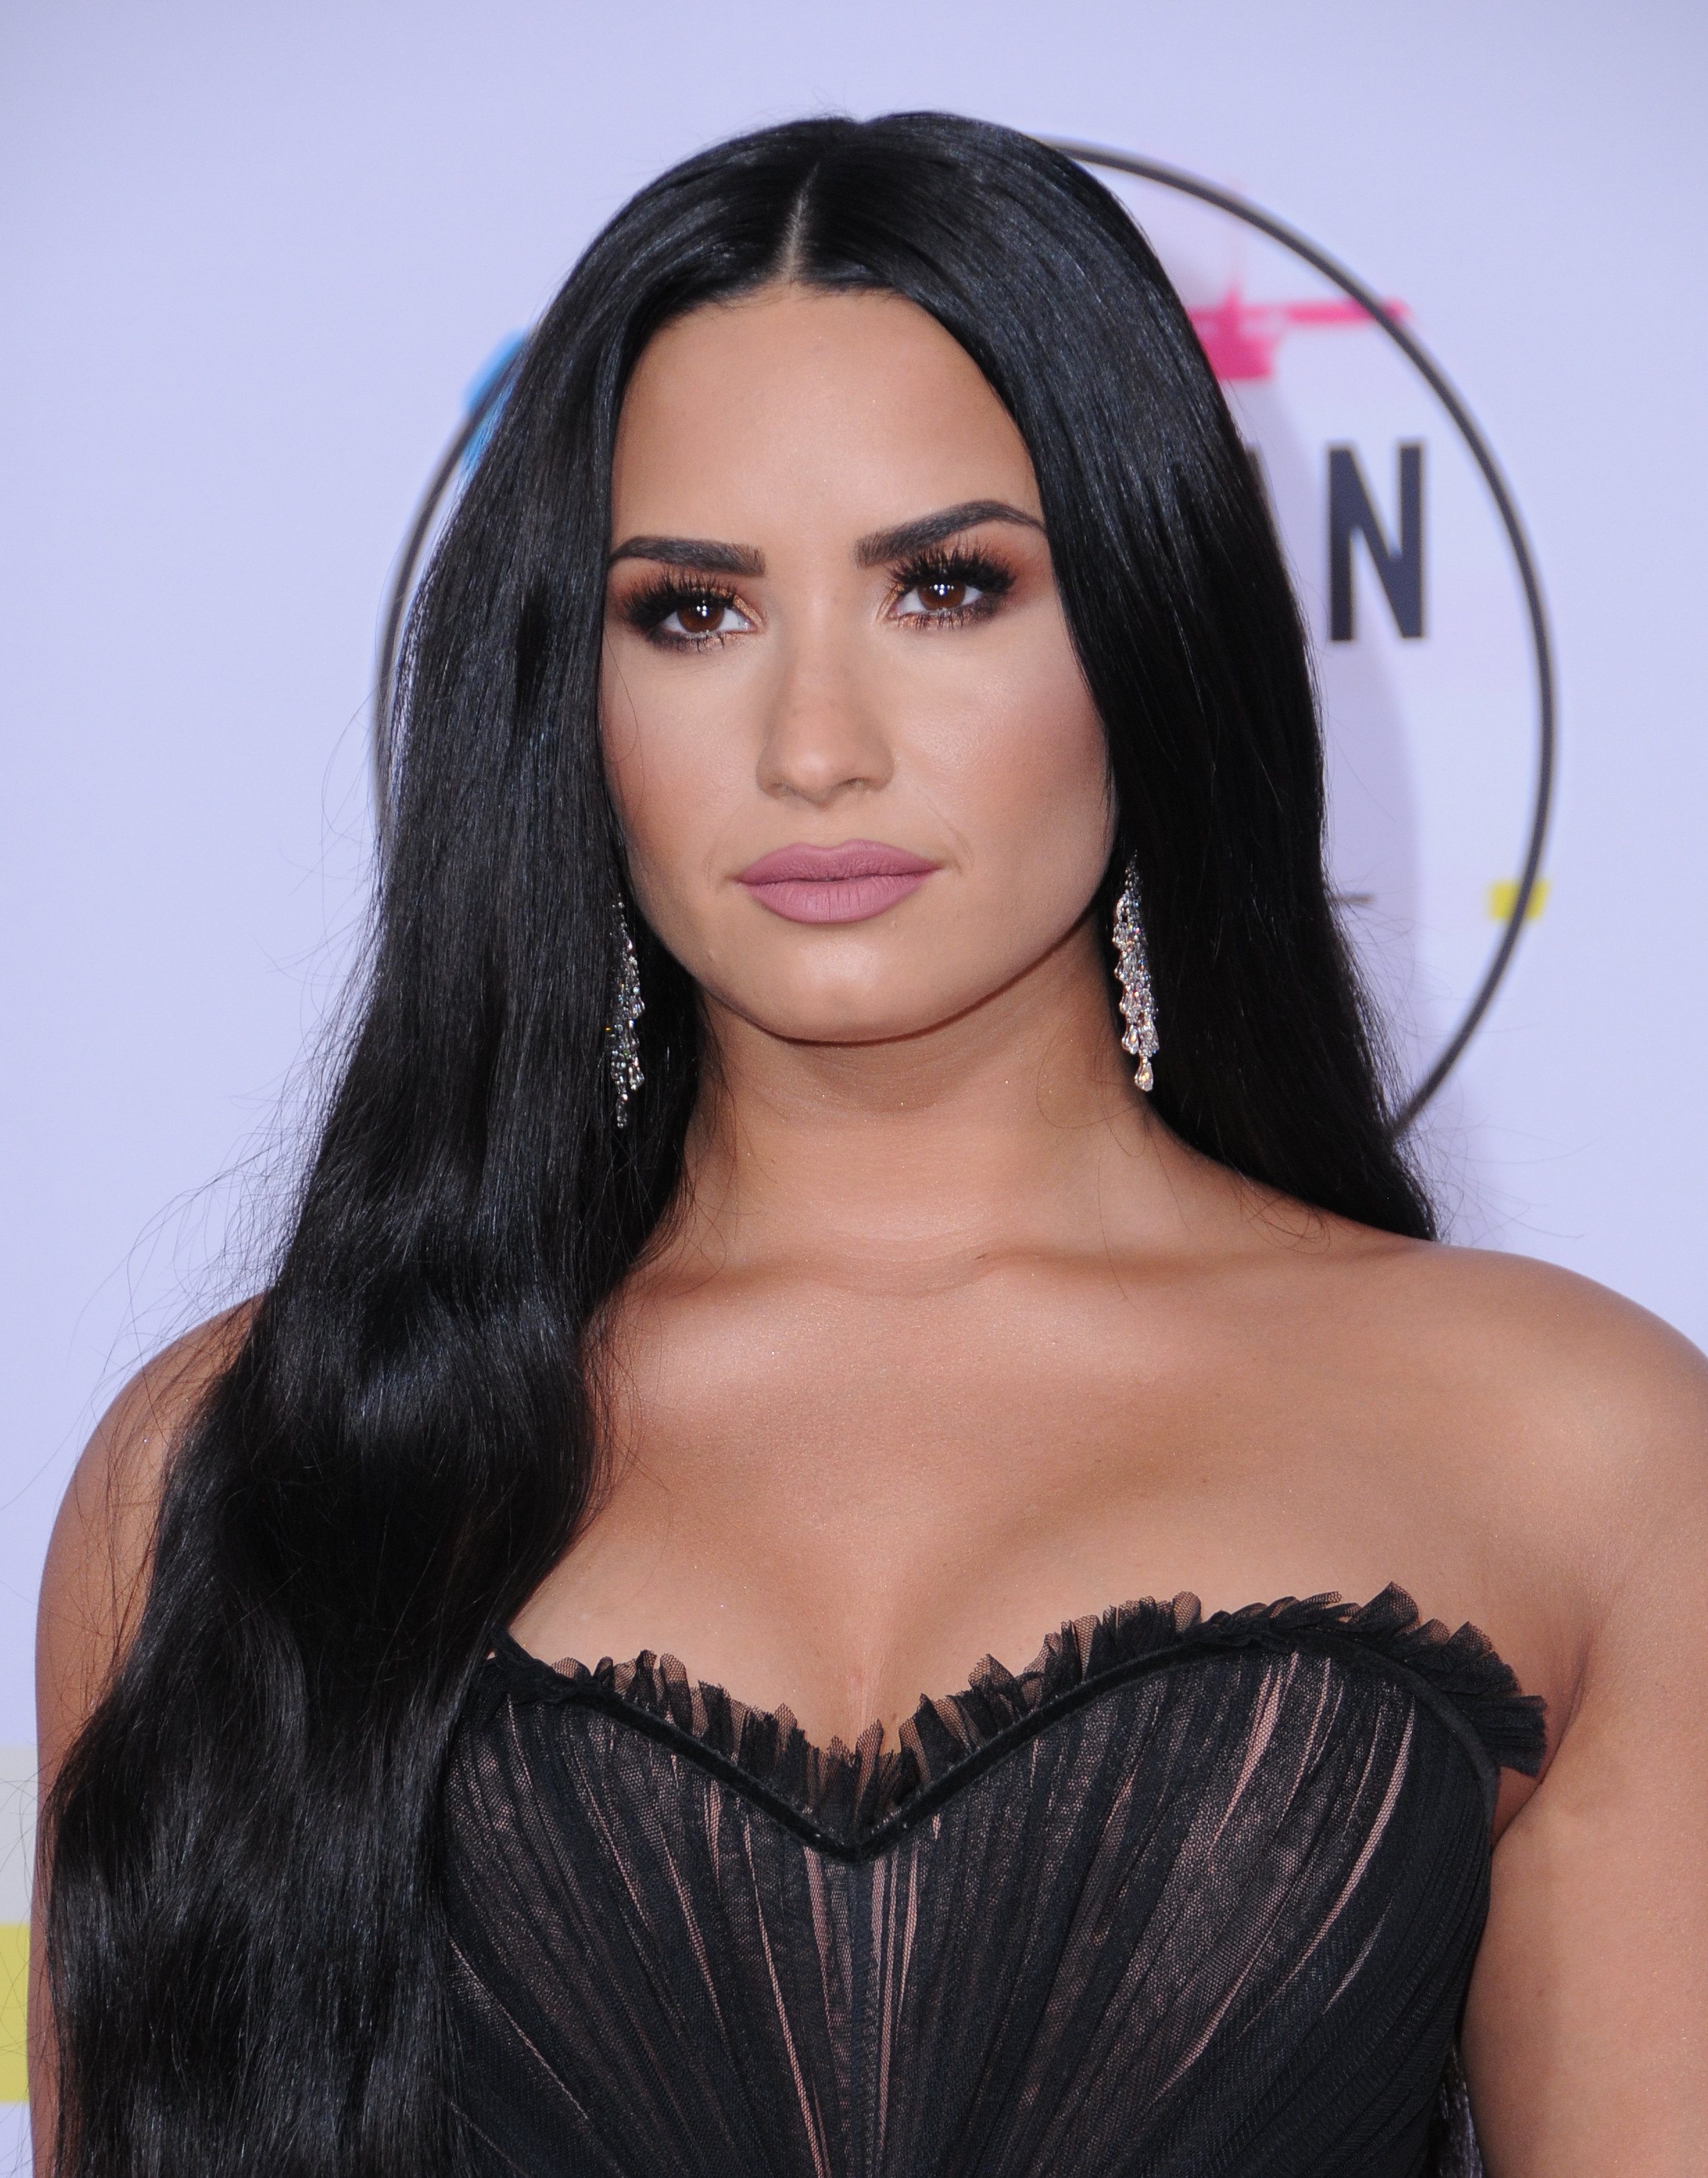 Demi Lovato Now Awake And Surrounded By Family Members, Representative Says